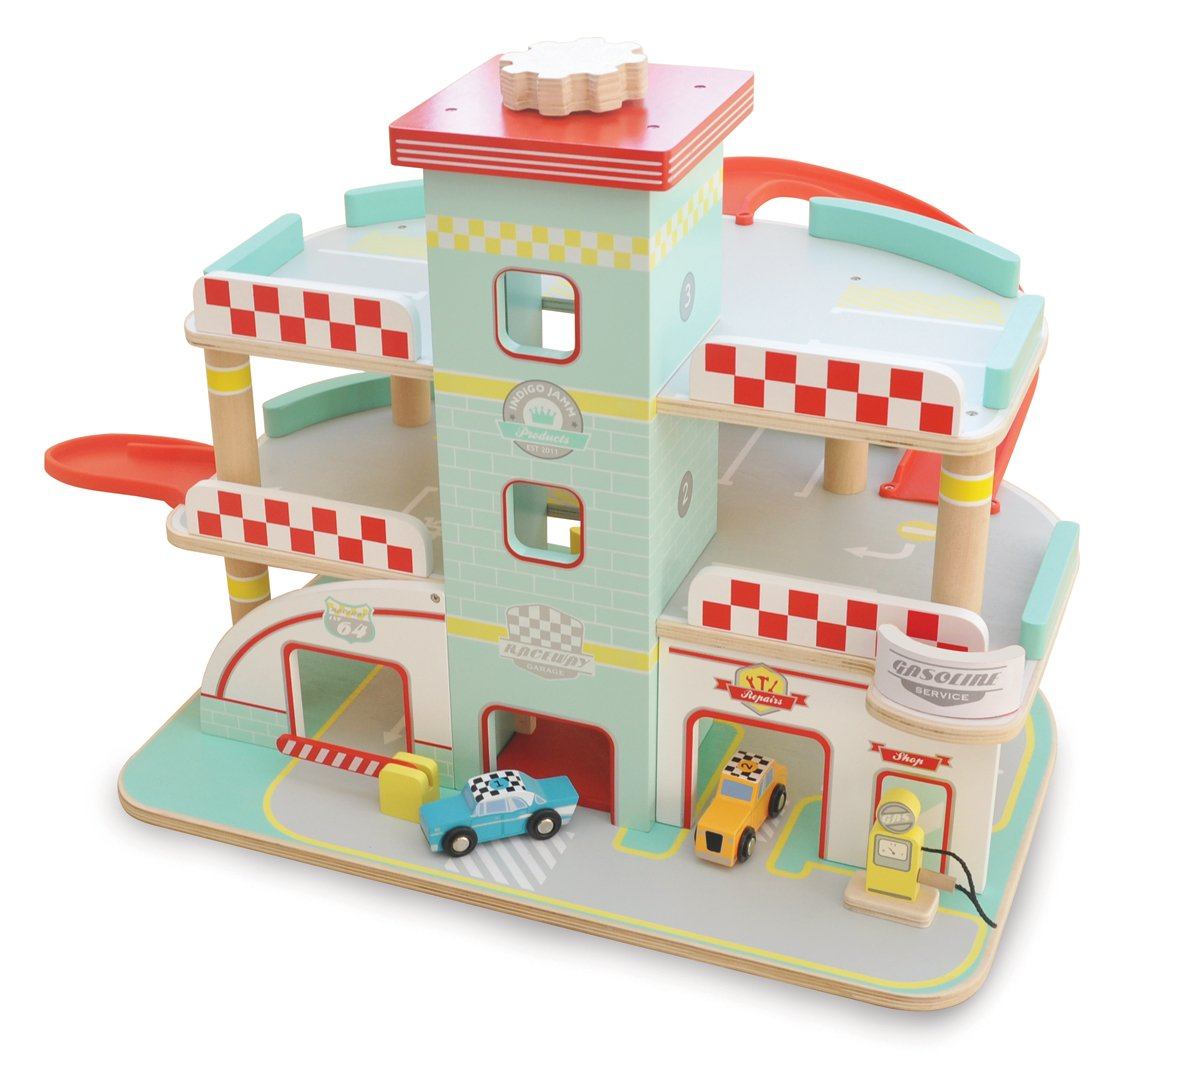 Indigo Jamm Raceway Garage, Retro Design Play Vehicle Set on 3 Floors with Lift and Ramps and 2 Toy Cars Included CIJ2041